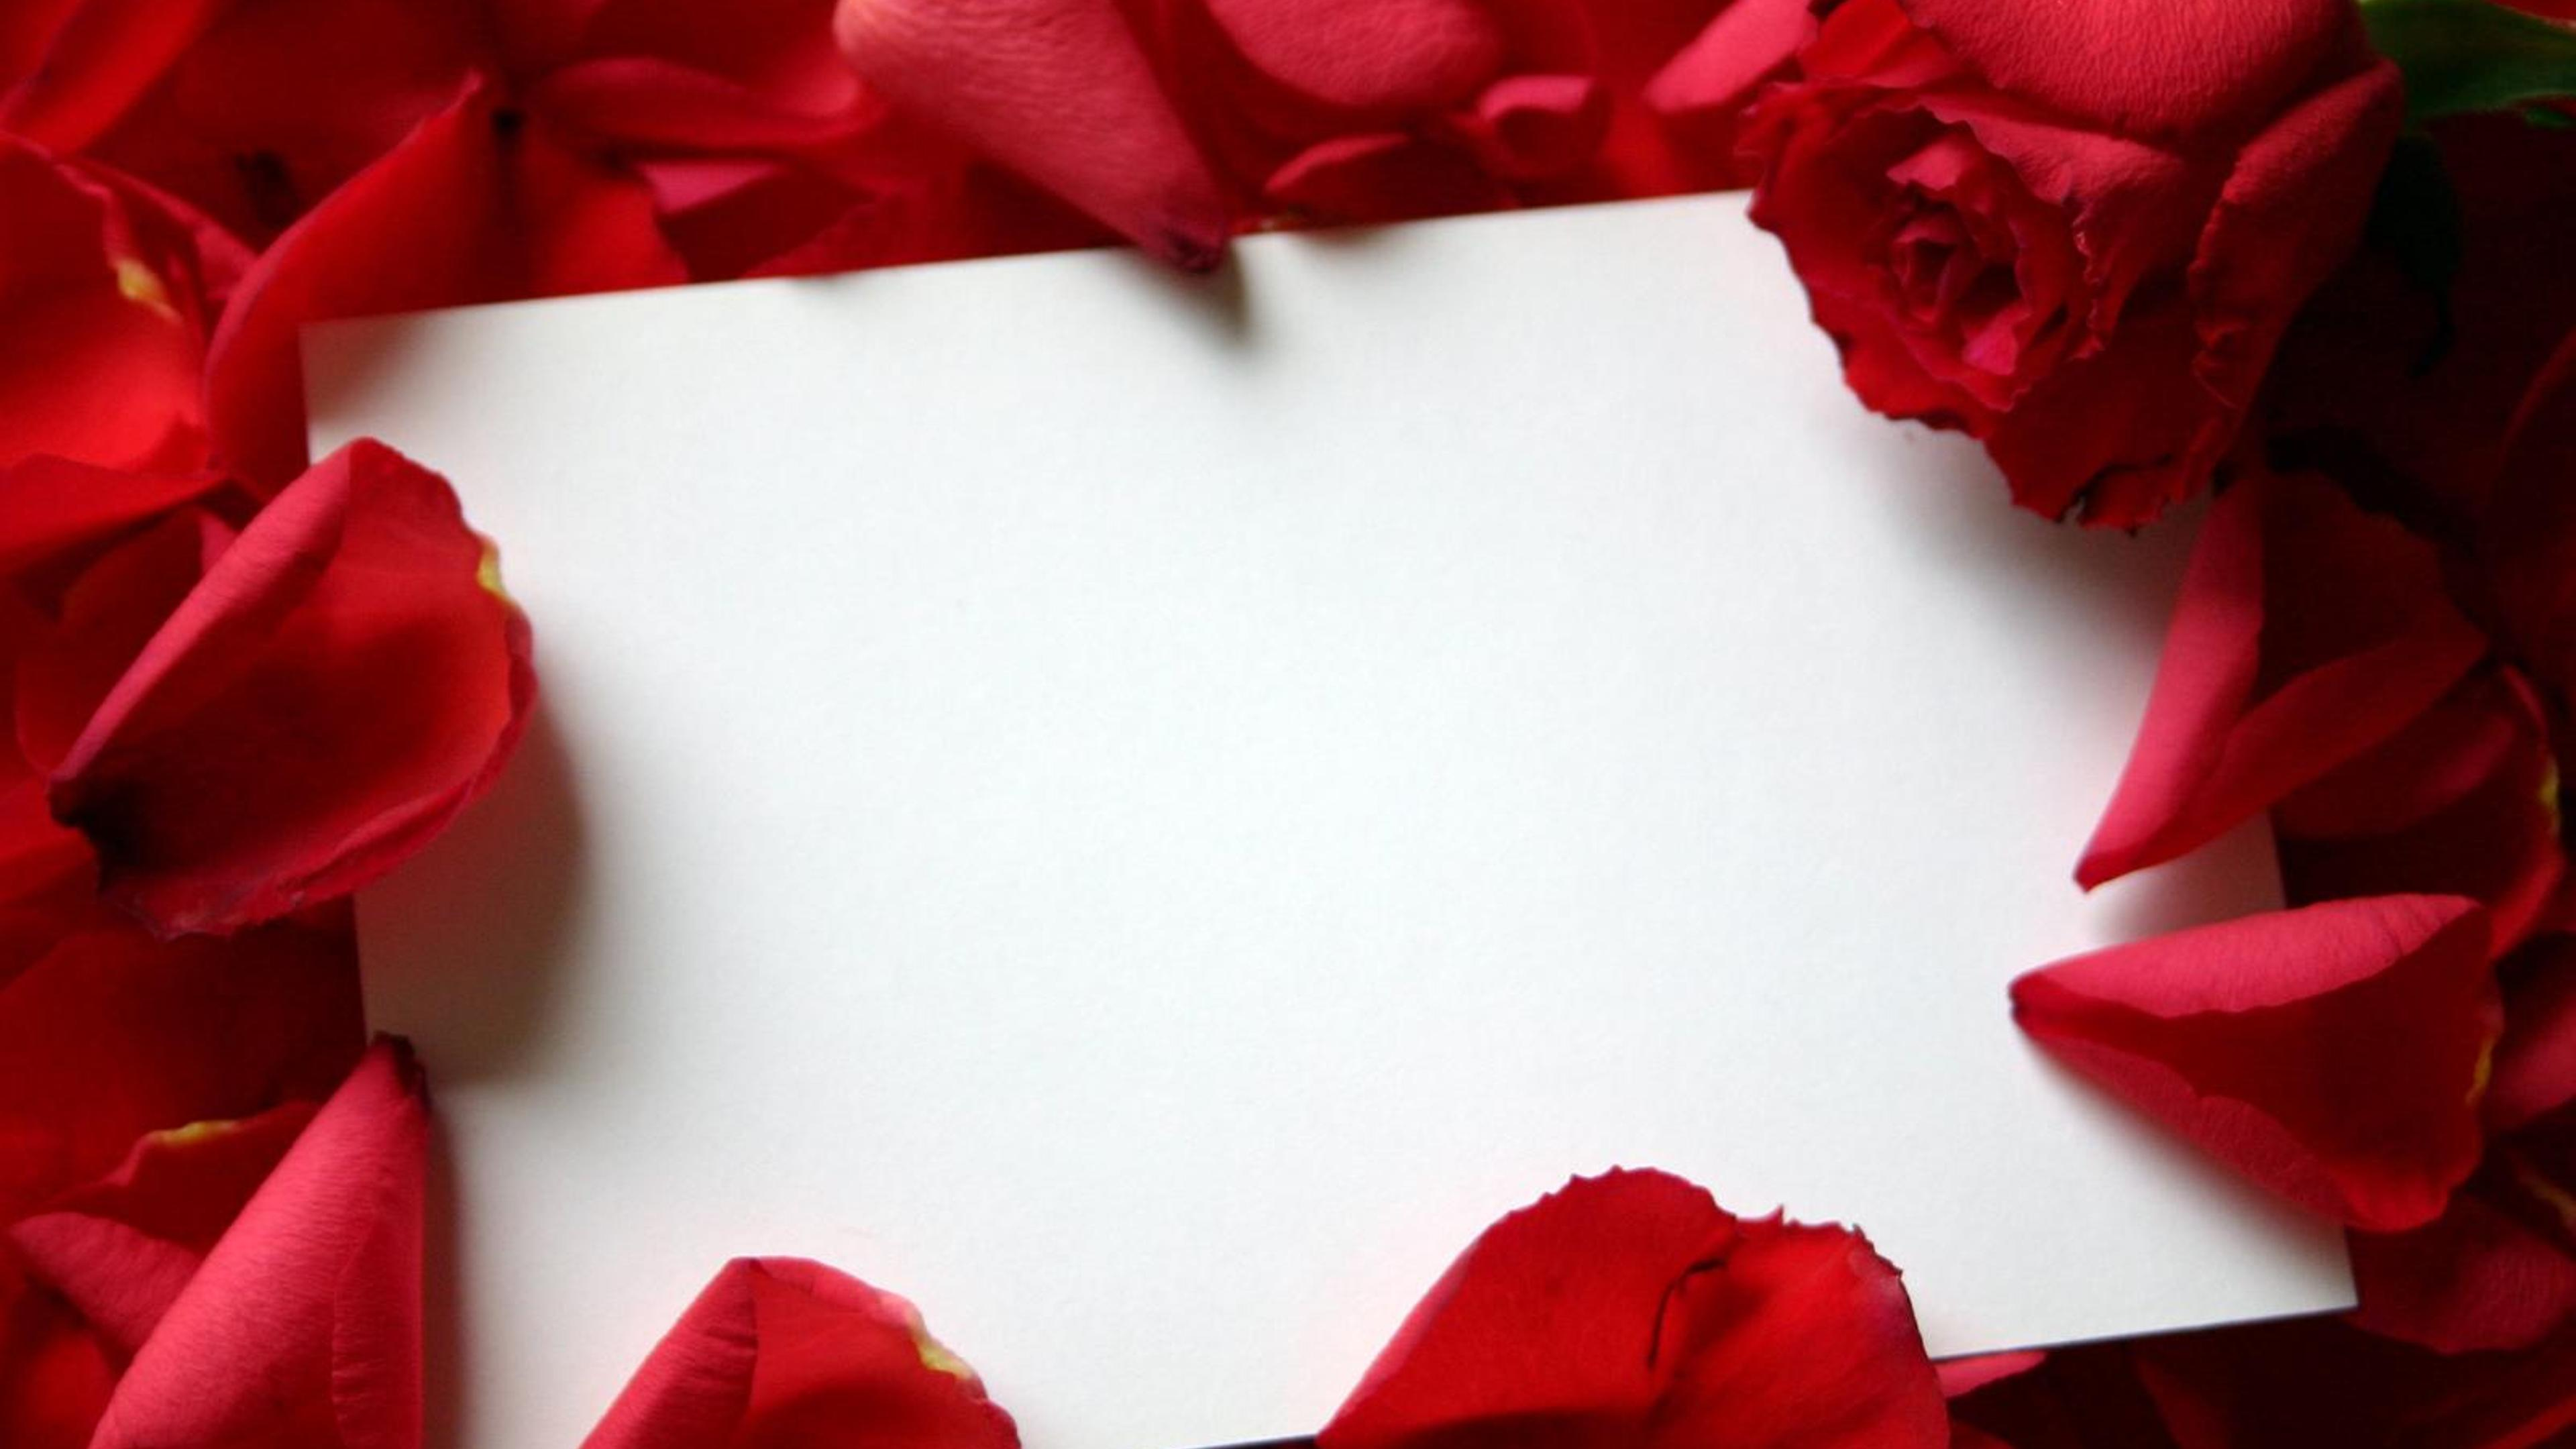 Download Wallpaper 3840x2160 Red Roses With Love Letter